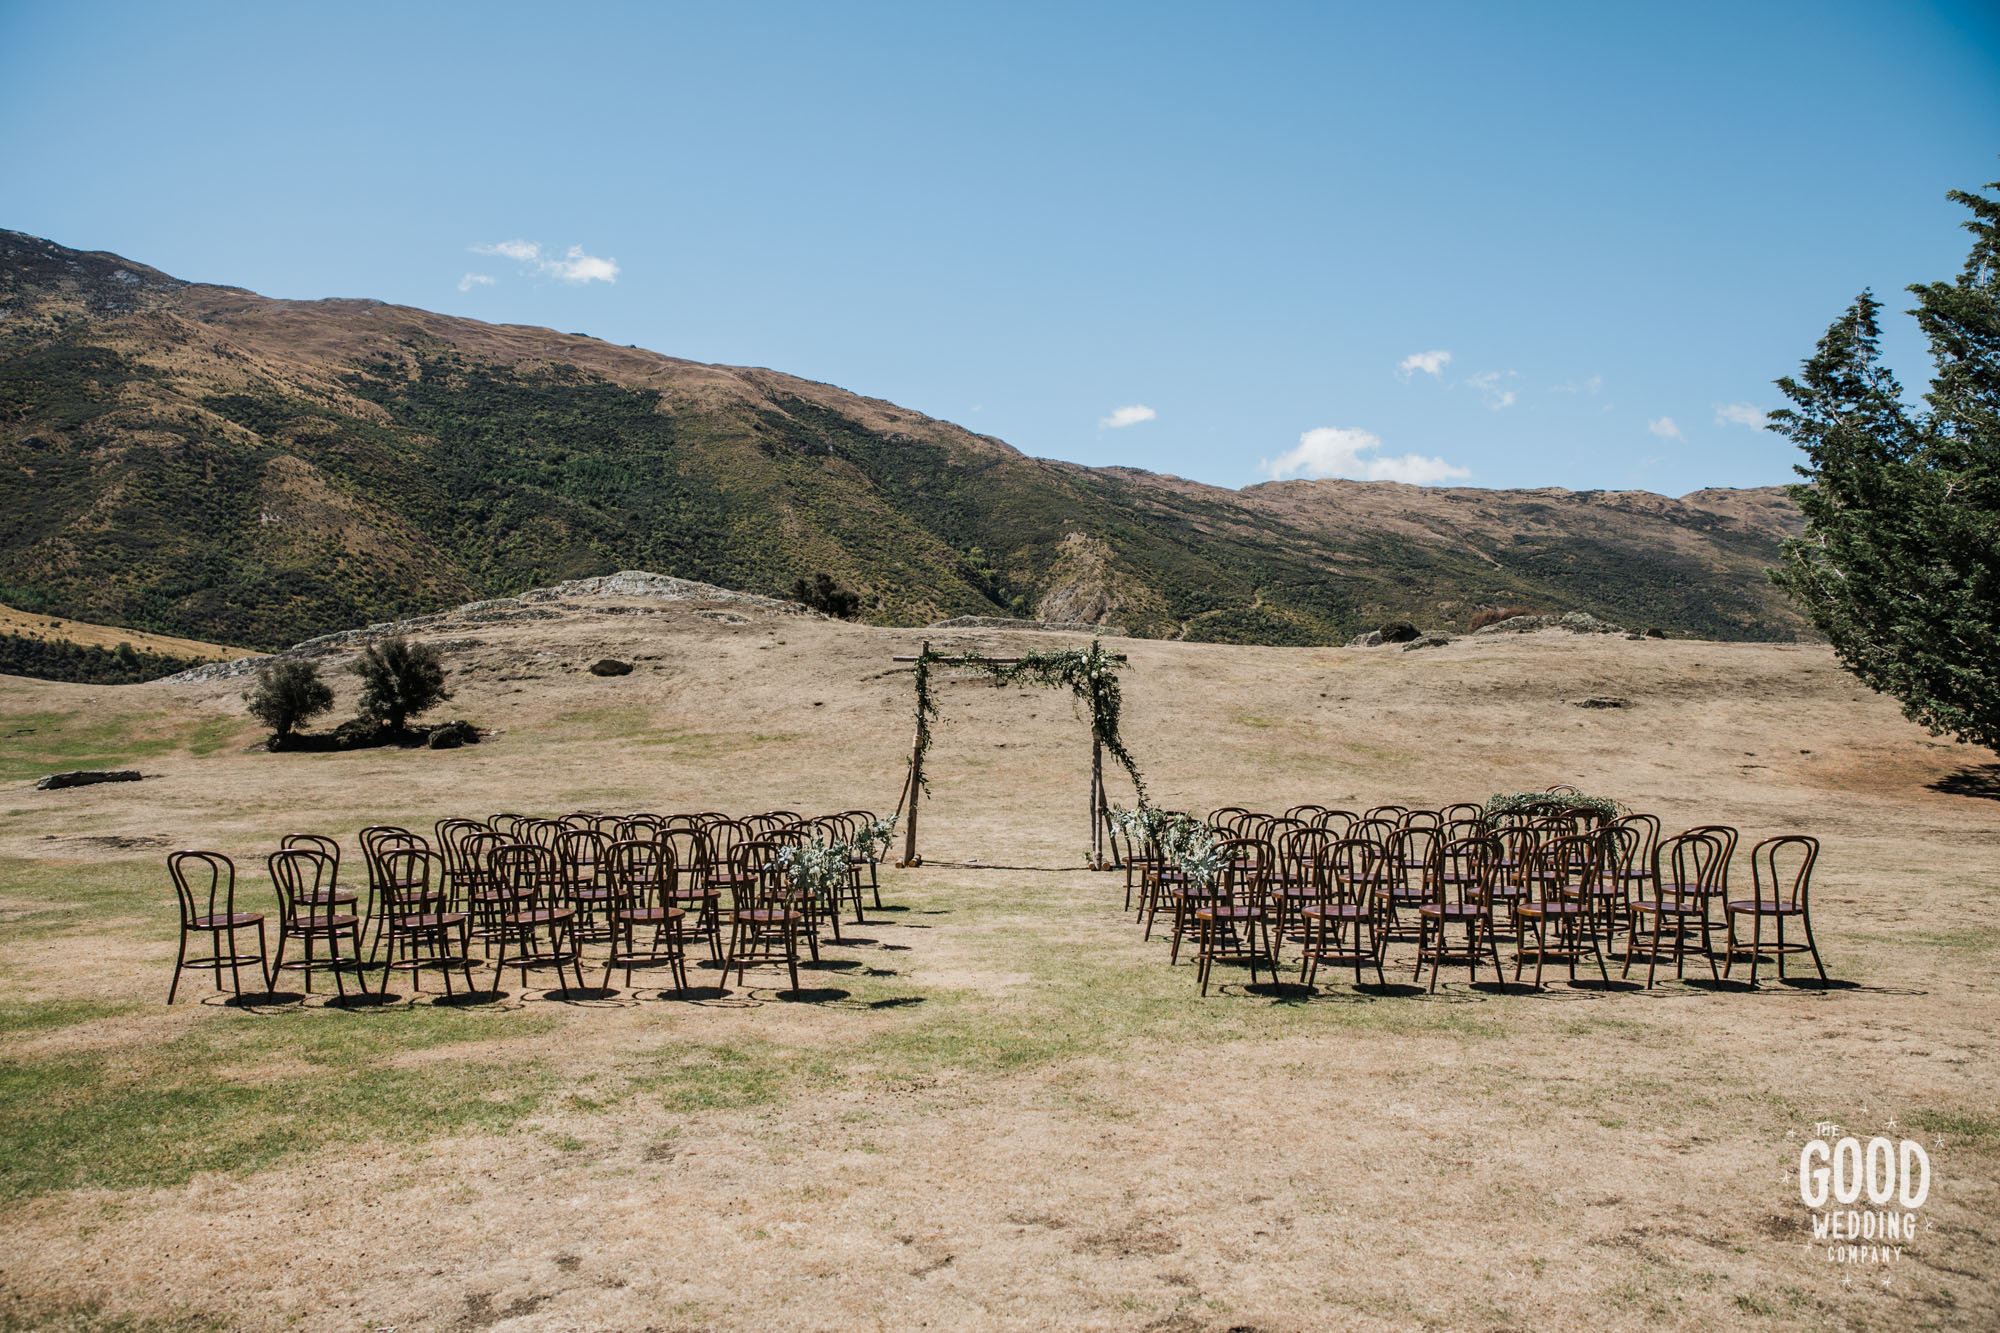 The-Good-Wedding-Company-LaurenLukas-Peregrine-Winery-Wanaka-Photographer-94.jpg